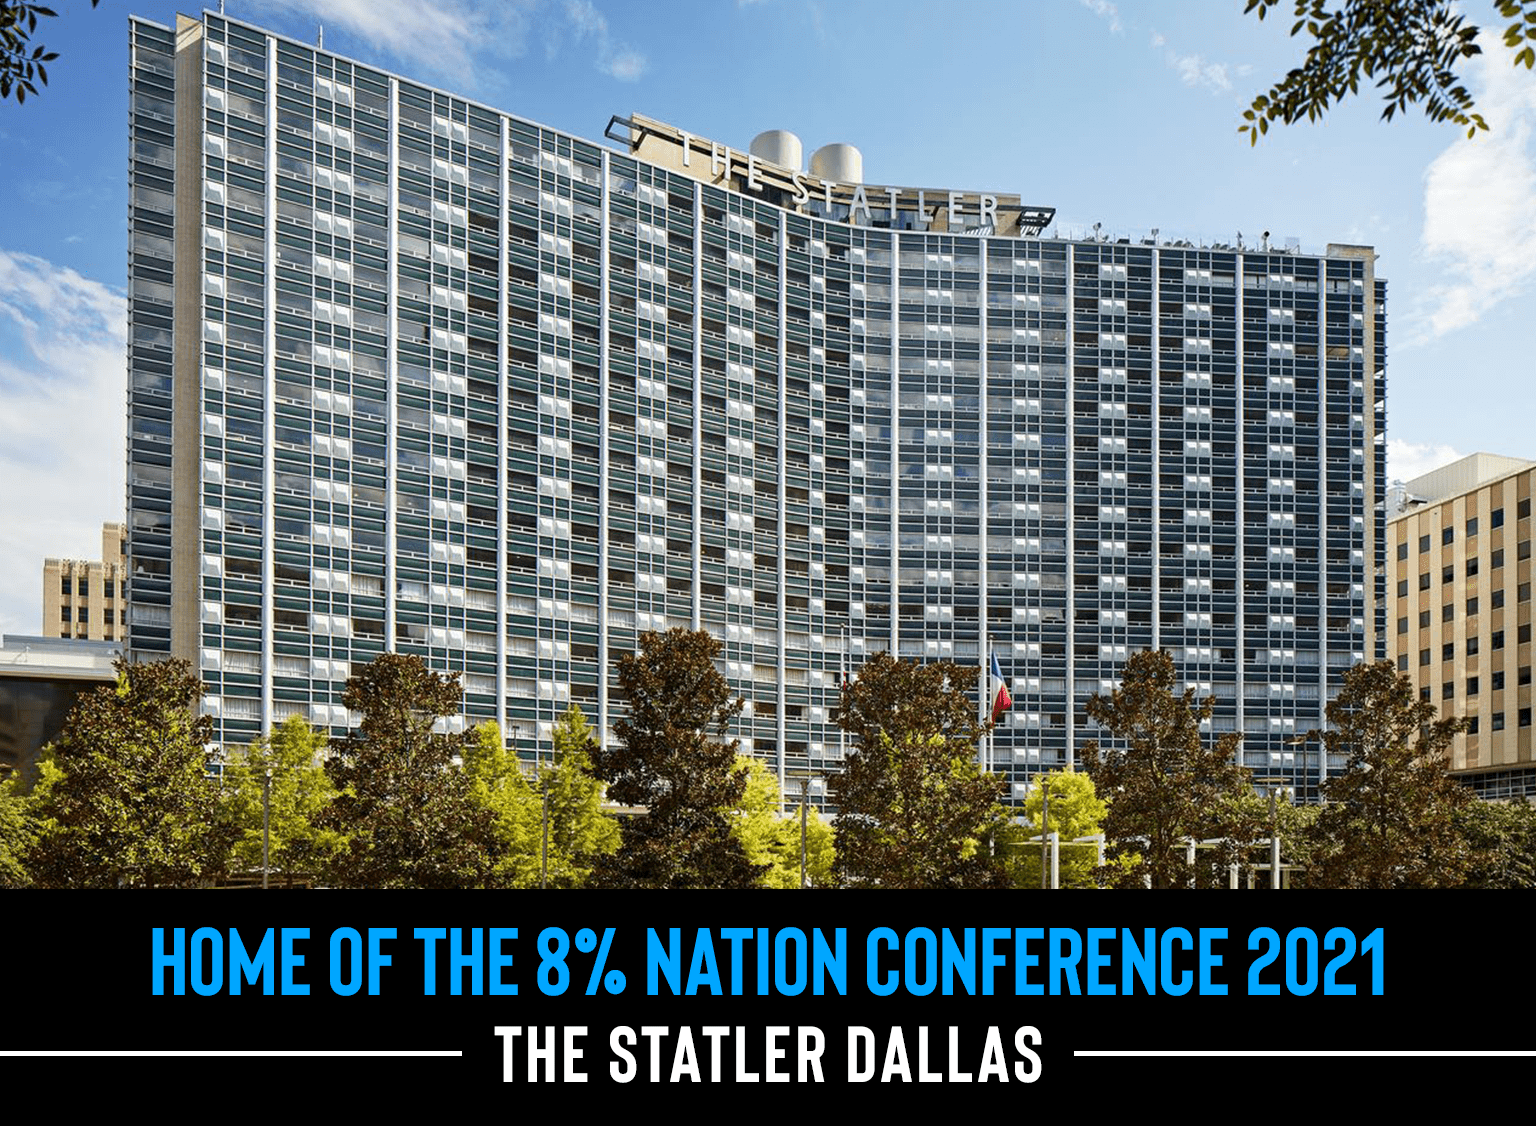 An image of the Statler Hotel in Dallas, TX